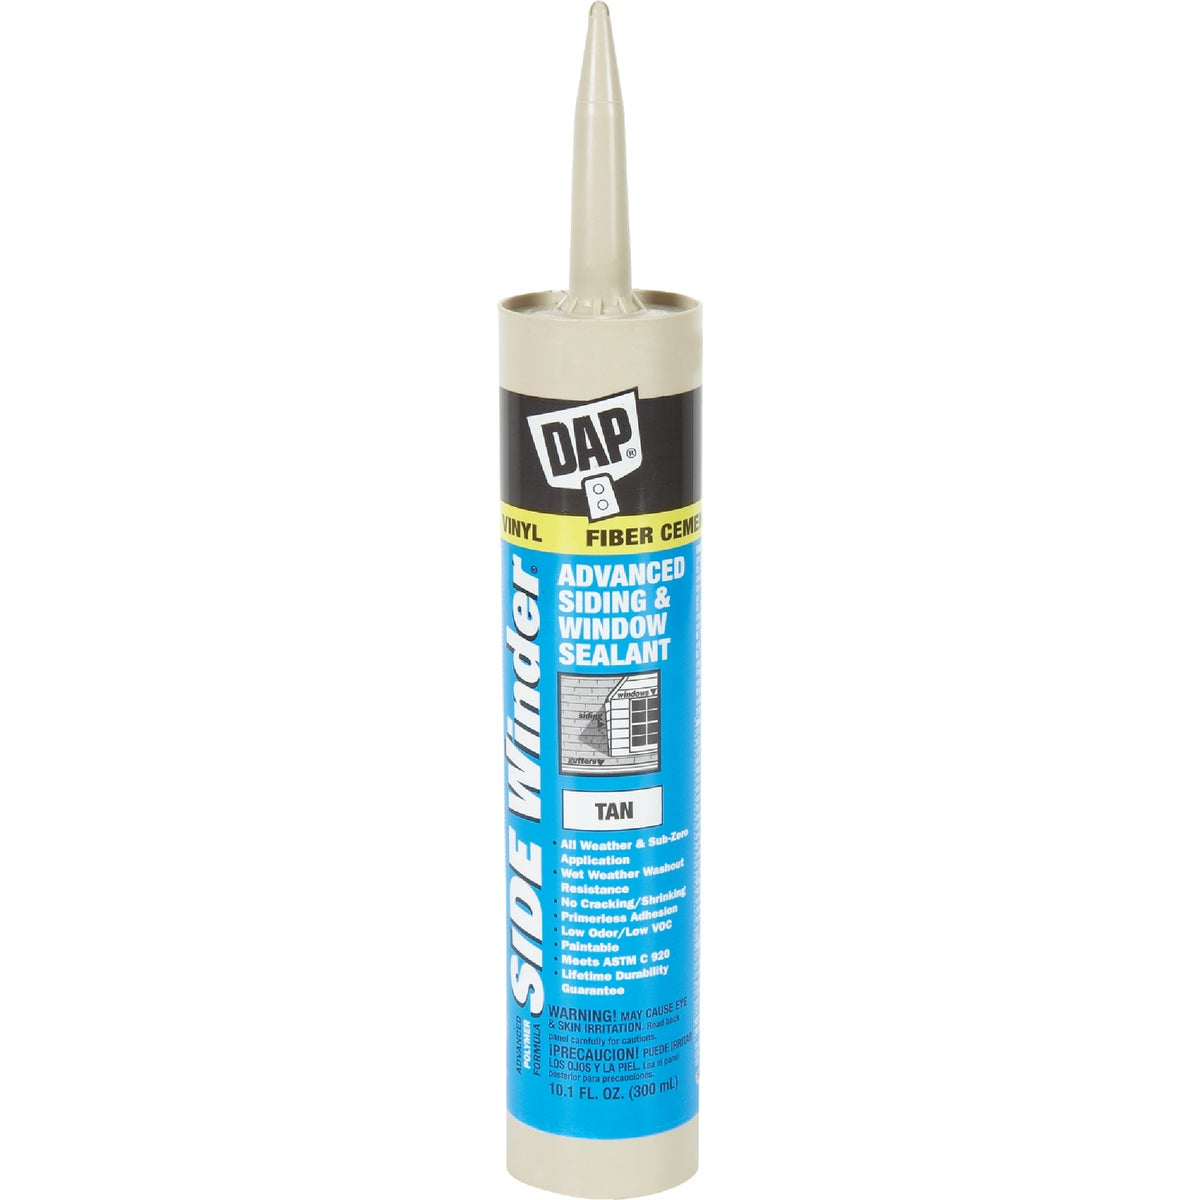 TAN SIDEWINDER SEALANT - 00810 by Dap Inc